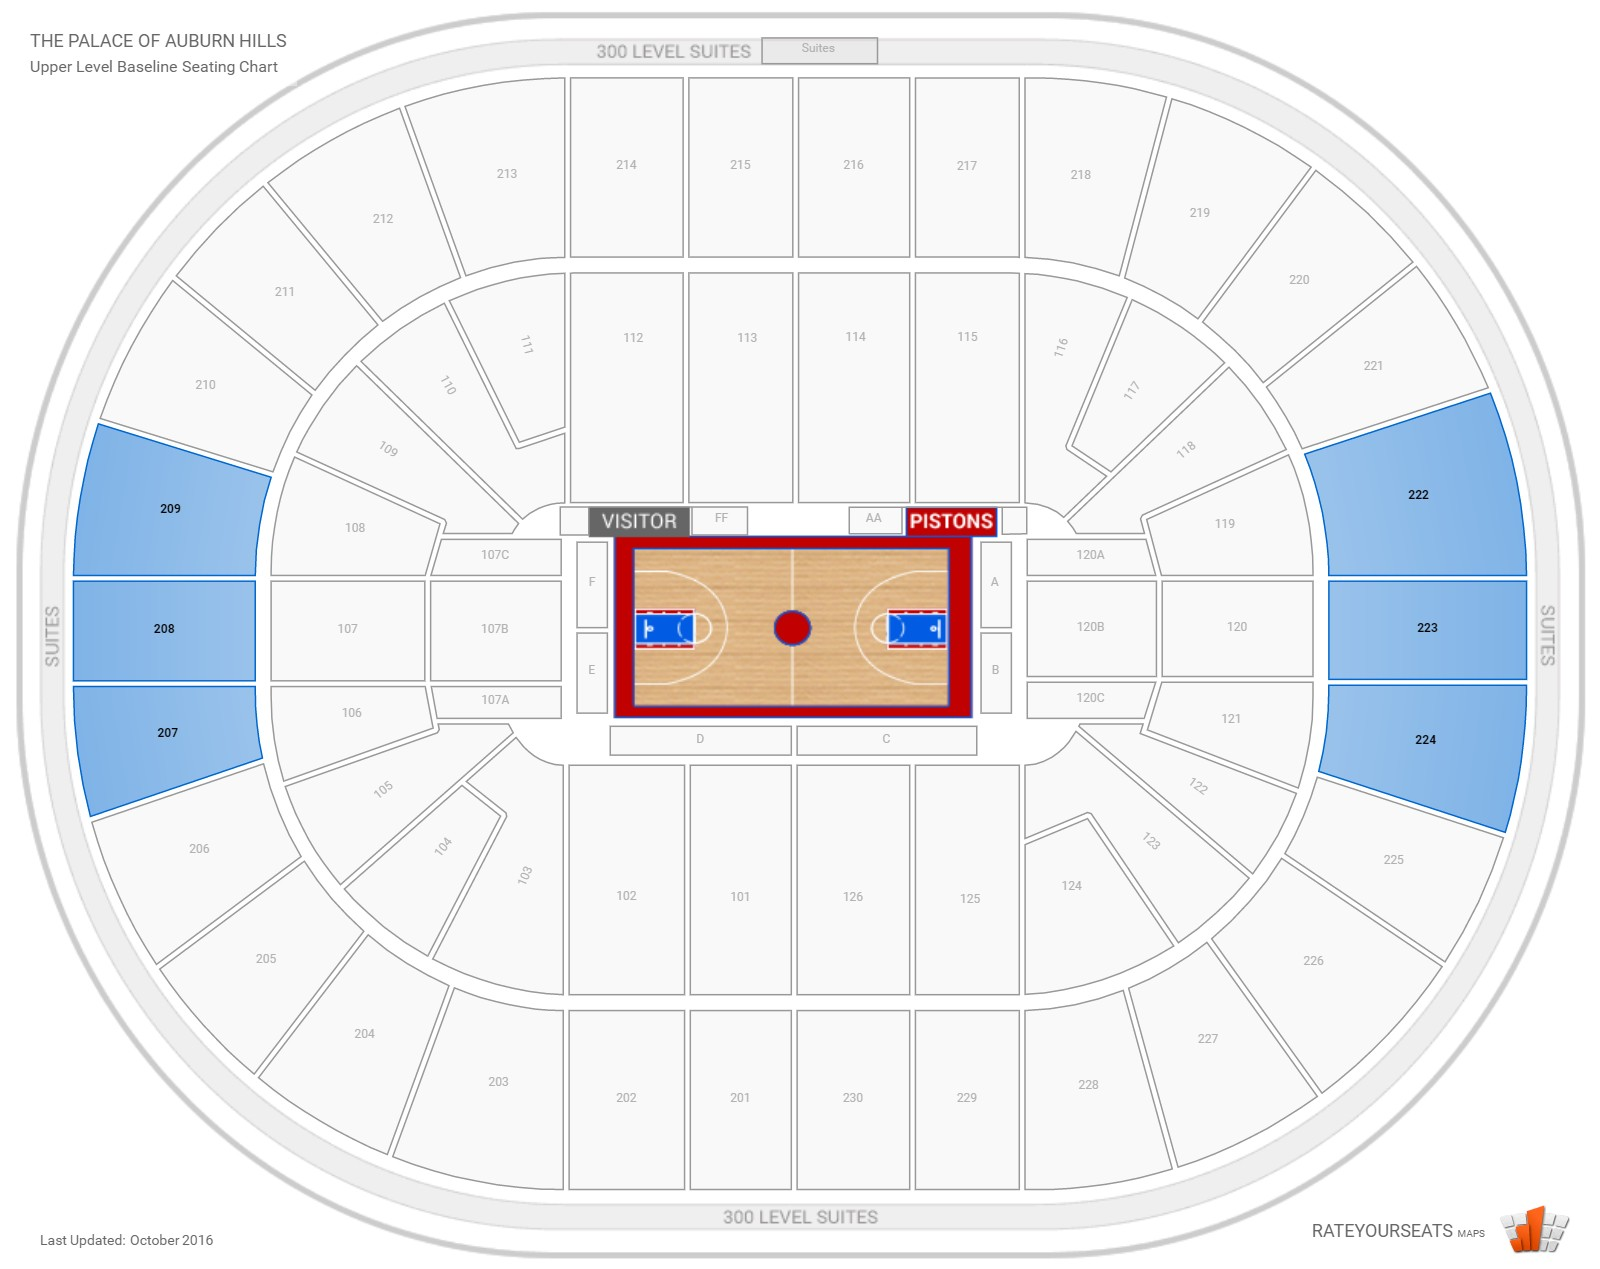 The Palace of Auburn Hills Upper Level Baseline seating chart